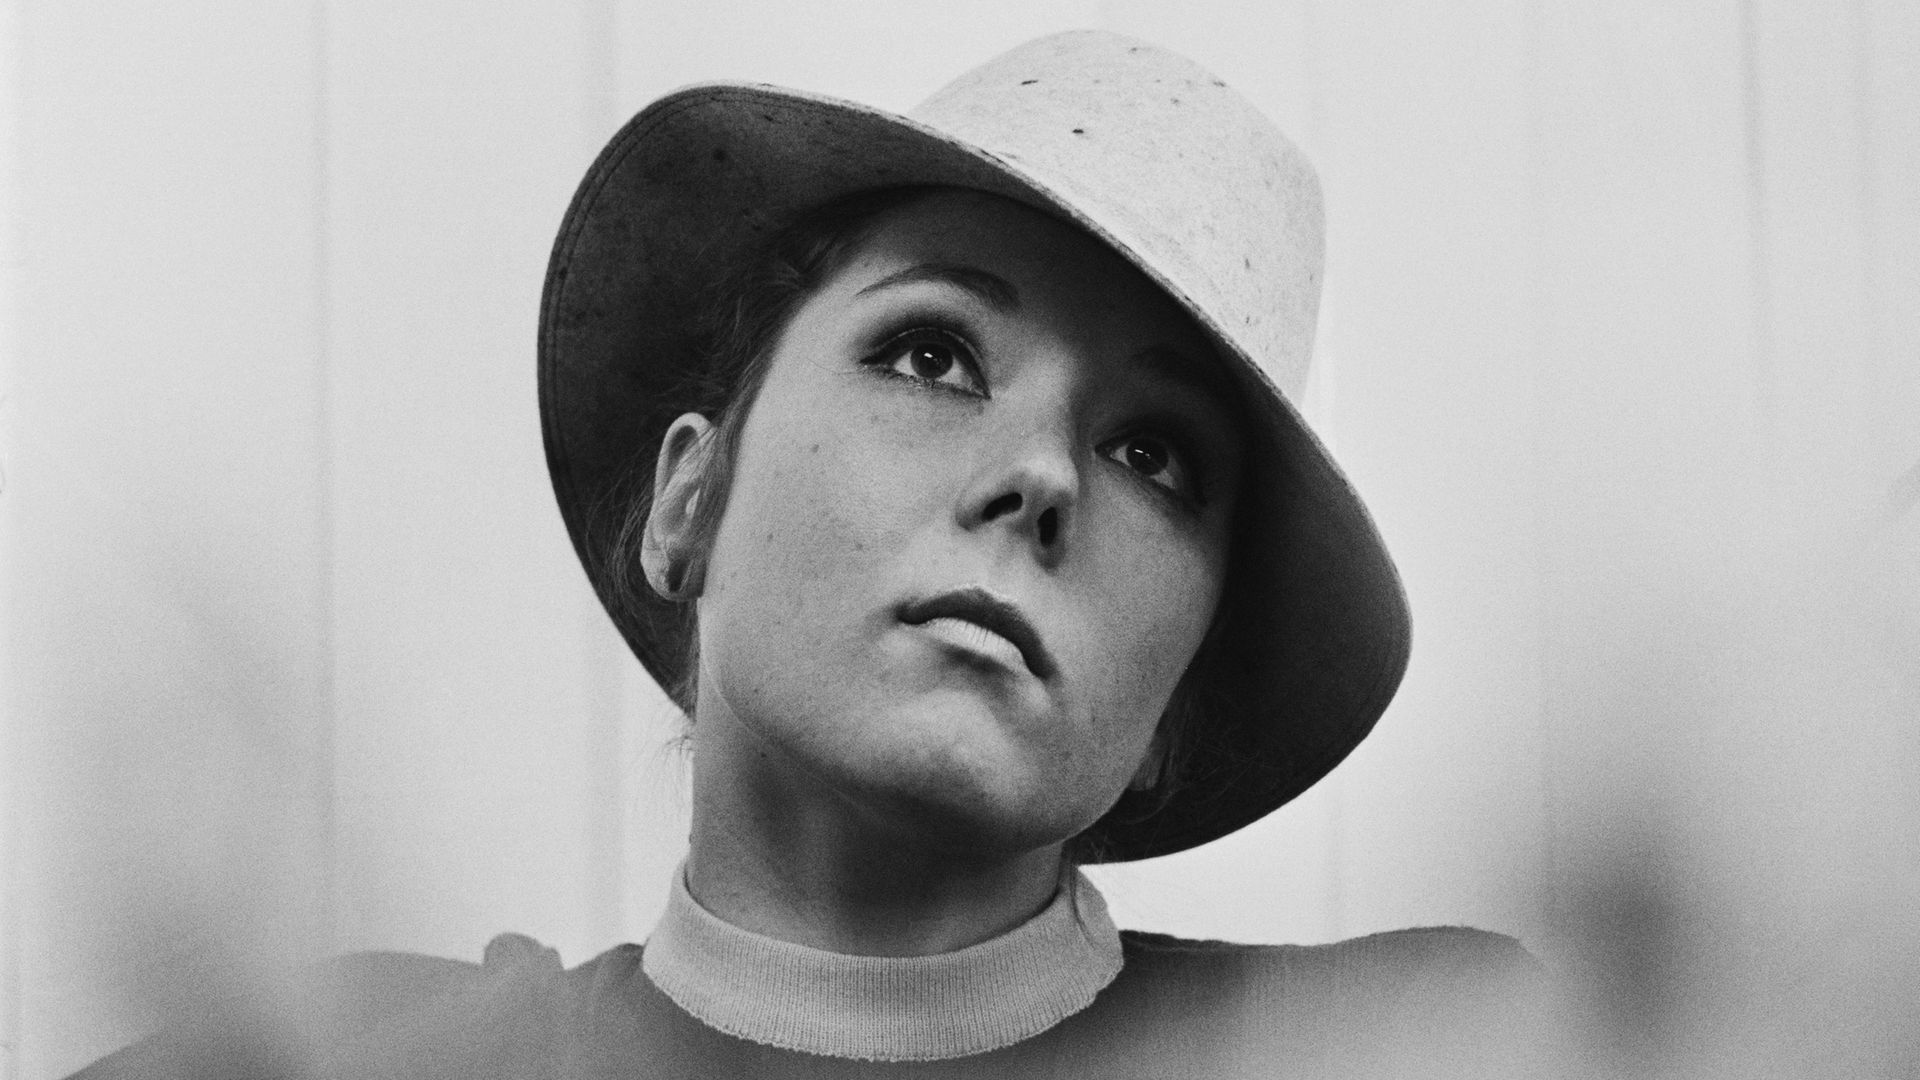 English actress Diana Rigg. - Credit: Evening Standard/Hulton Archive/Getty Images